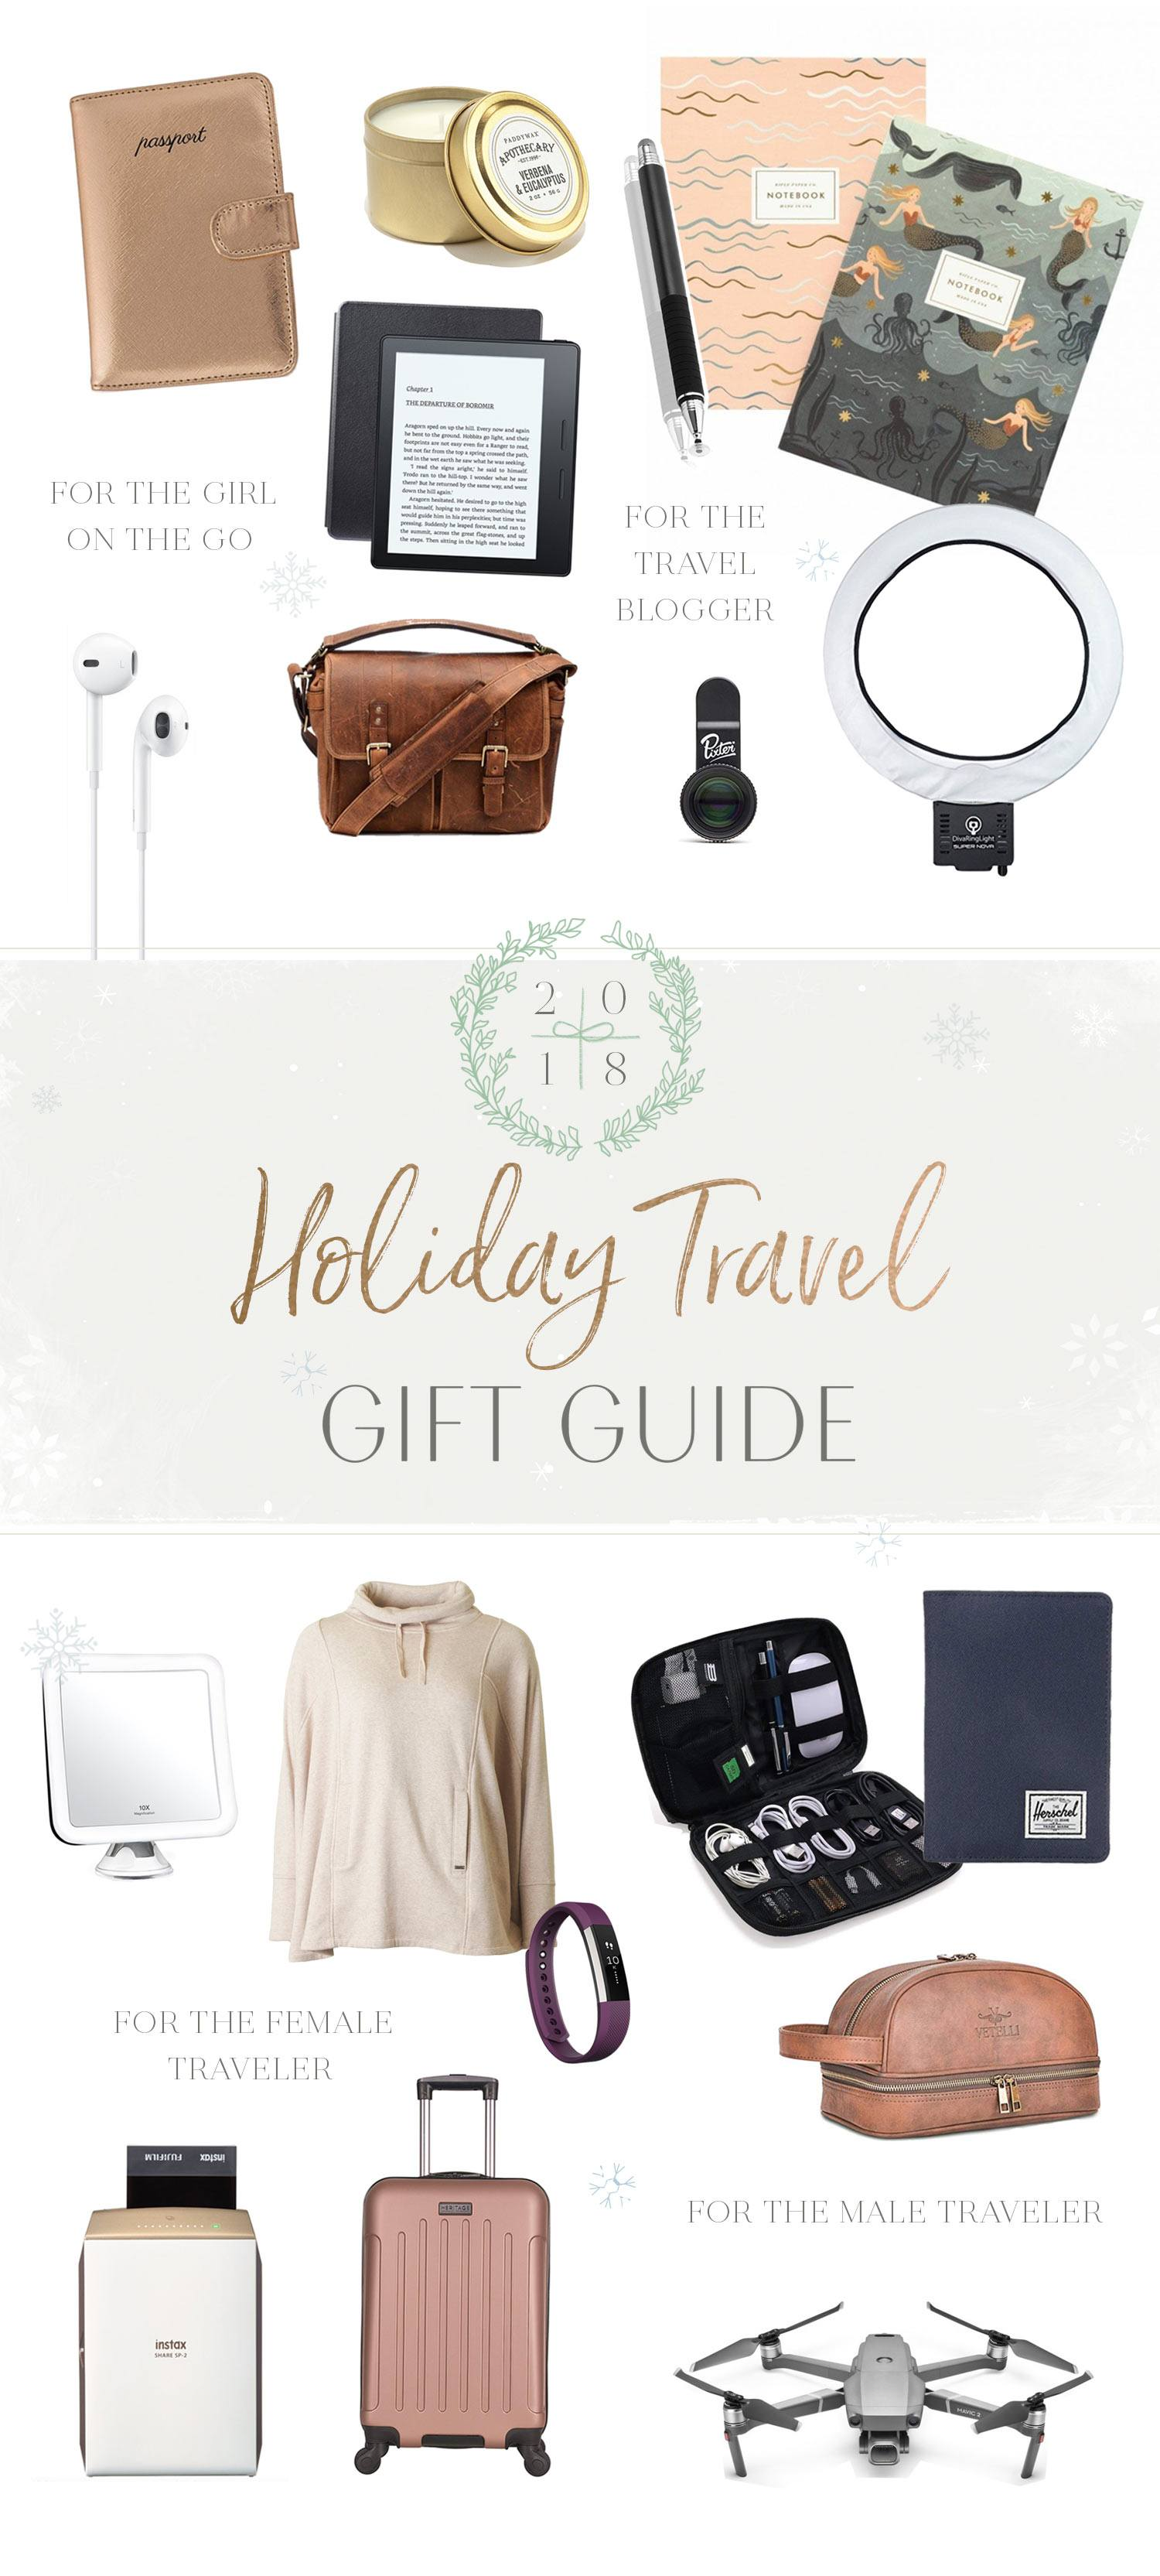 The guidelines for the Gift Travel Gift